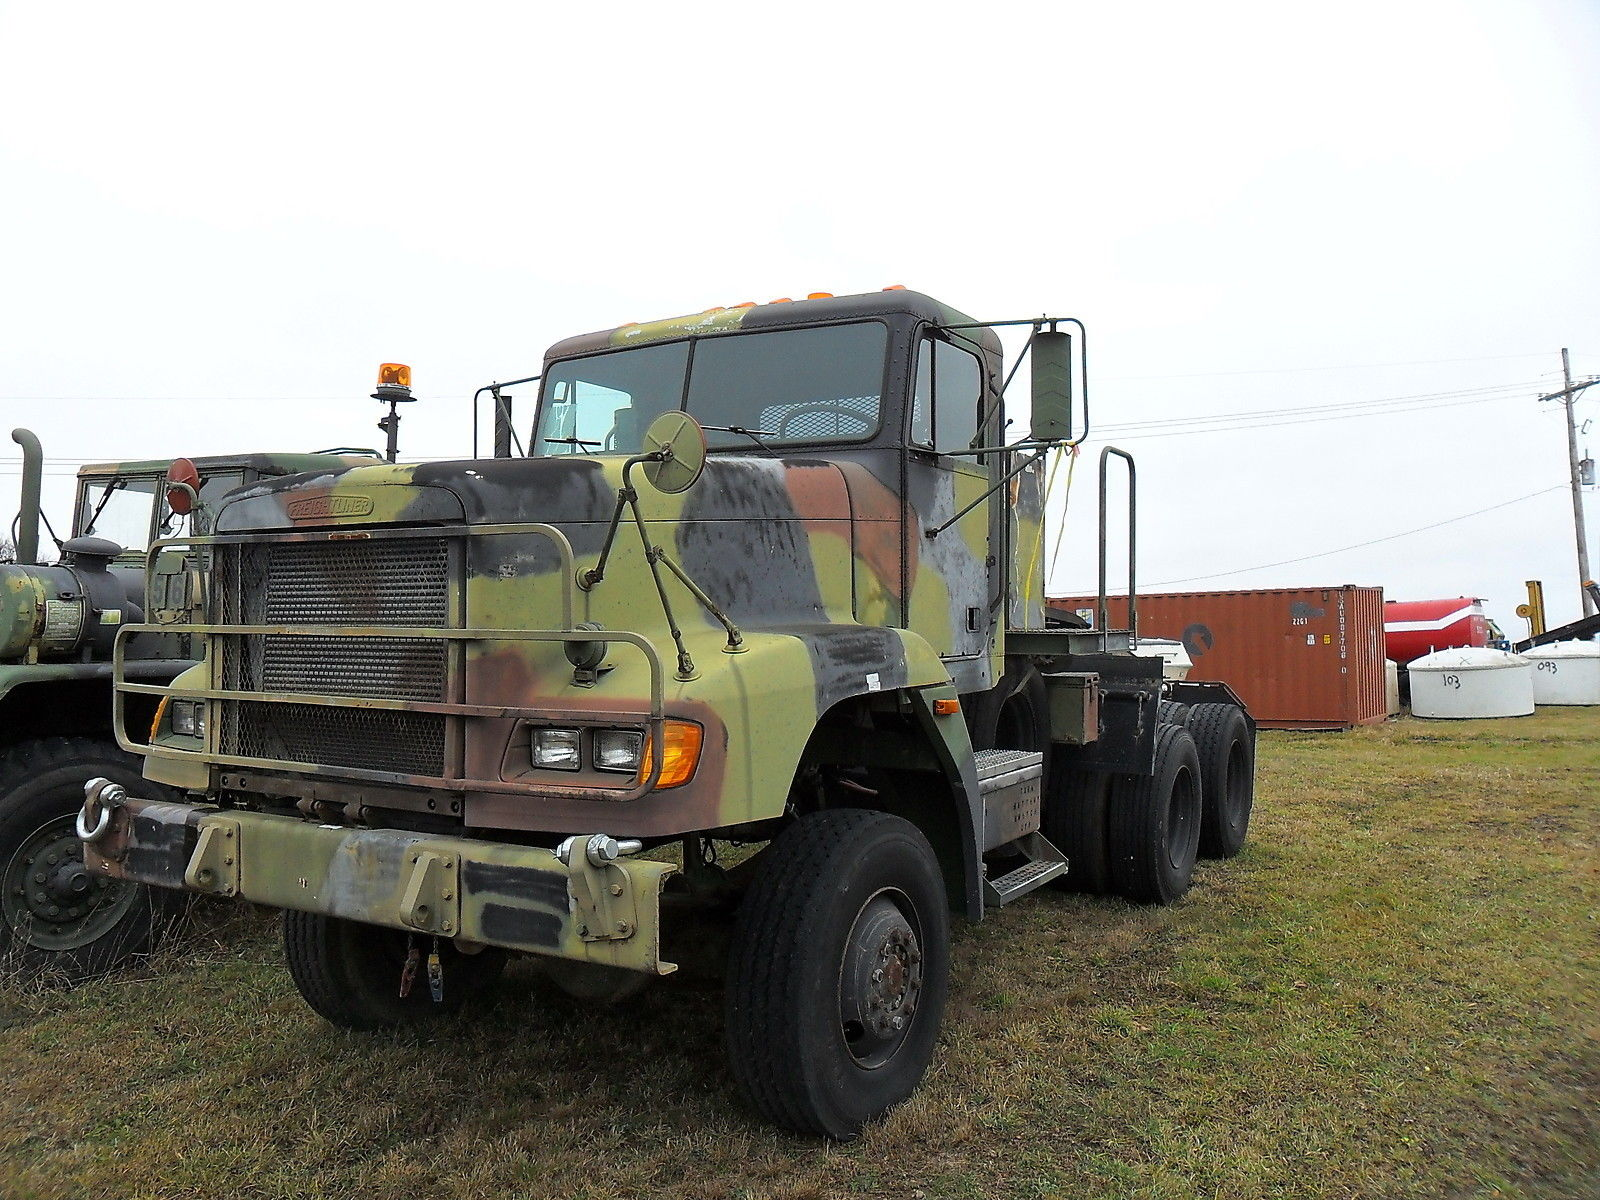 strong 1992 Freightliner M916a1 6X6 Truck military